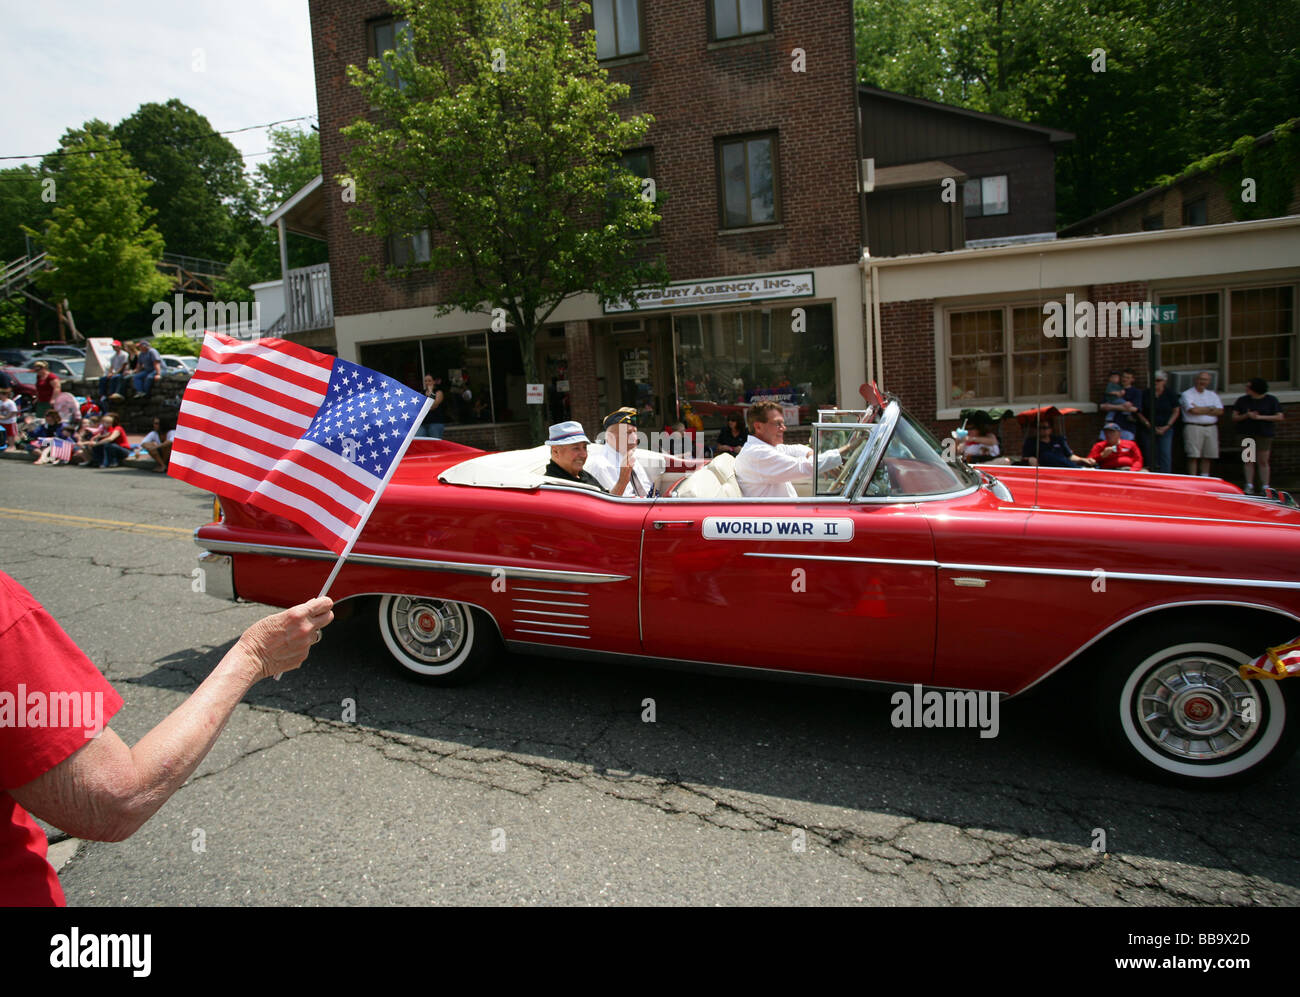 WWII Veterans honored during a Memorial Day Parade in Seymour Connecticut USA - Stock Image